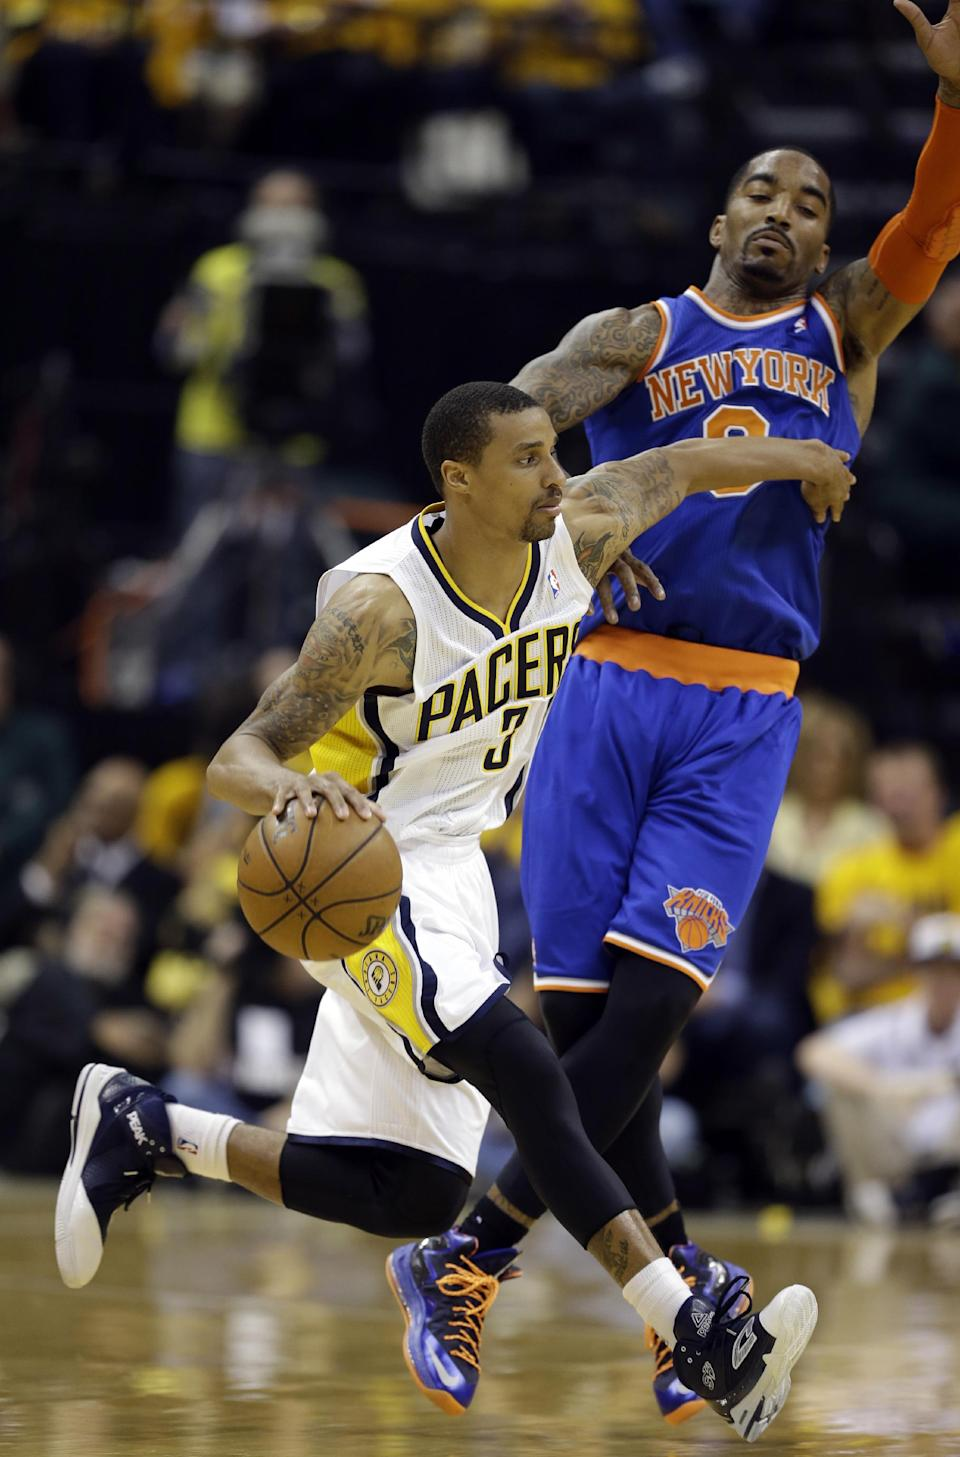 Indiana Pacers' George Hill (3) tries to drive past New York Knicks' J.R. Smith during the first half of Game 6 of an Eastern Conference semifinal NBA basketball playoff series Saturday, May 18, 2013, in Indianapolis. (AP Photo/Darron Cummings)